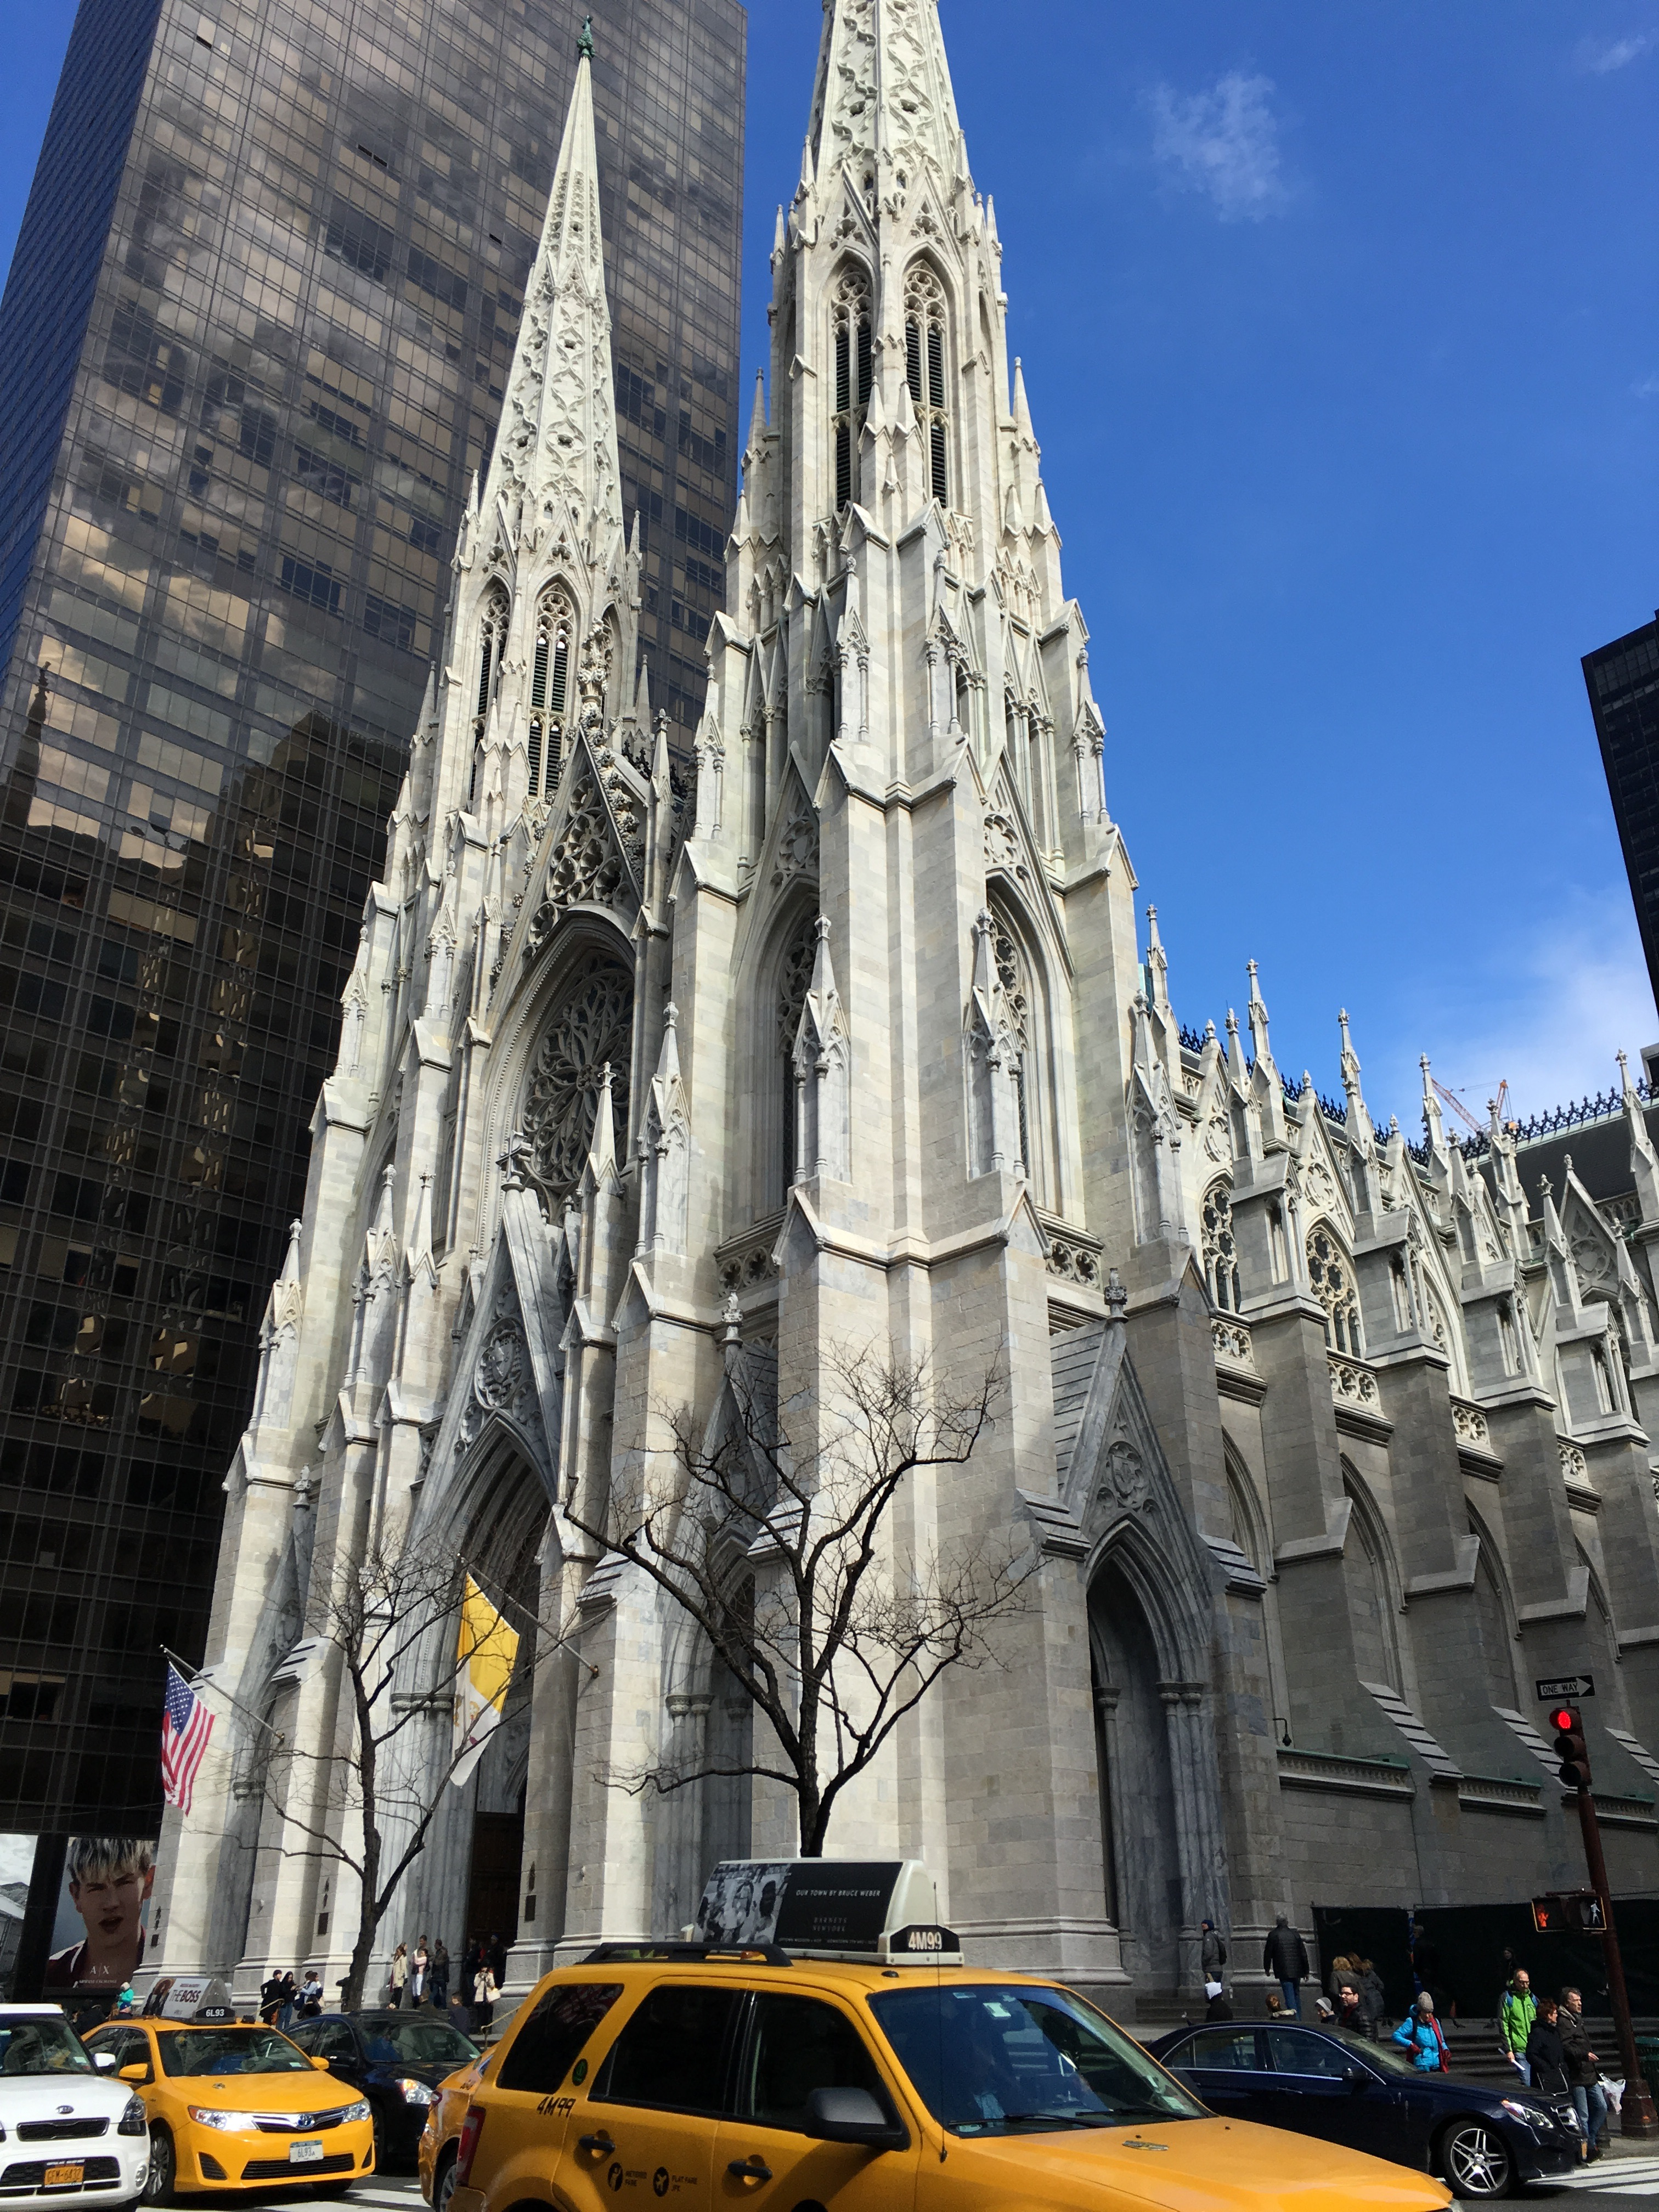 St. Patricks Cathedral, perhaps the most famous religious structure in the city, has been a major tourist attraction for decades. Even as the surrounding area has developed, it has continued to be a staple in the urban fabric.